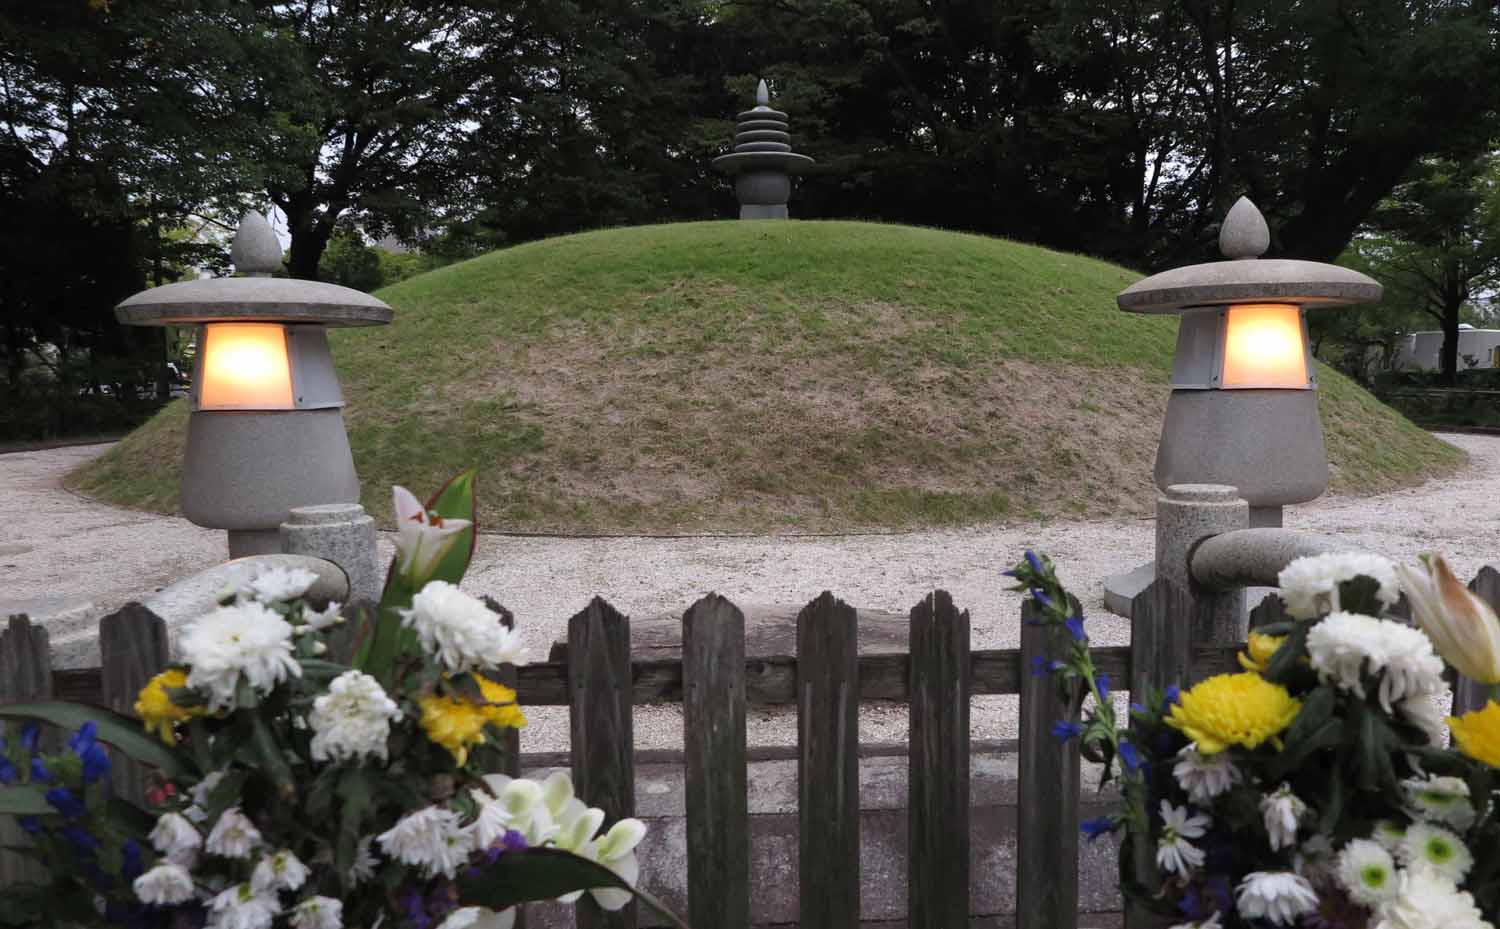 Japan-Hiroshima-Peace-Park-Mass-Cremation-Burial-Mound